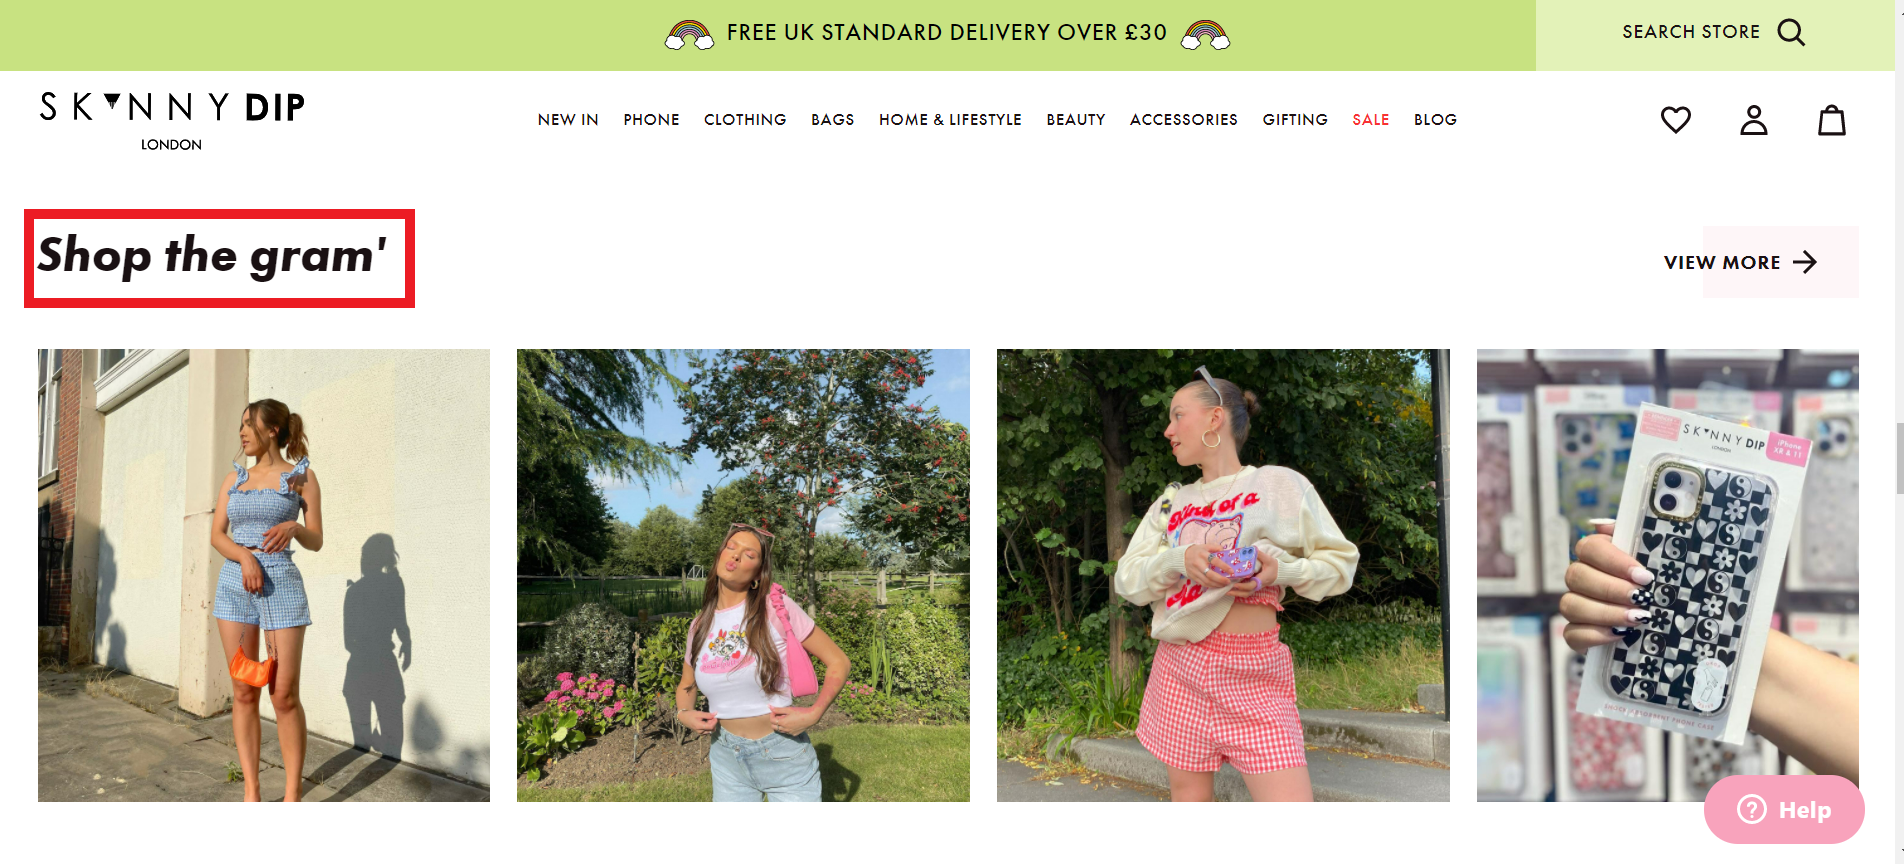 SkinnyDip London's 'Shop the gram'' look paves the way for a convenient shopping experience